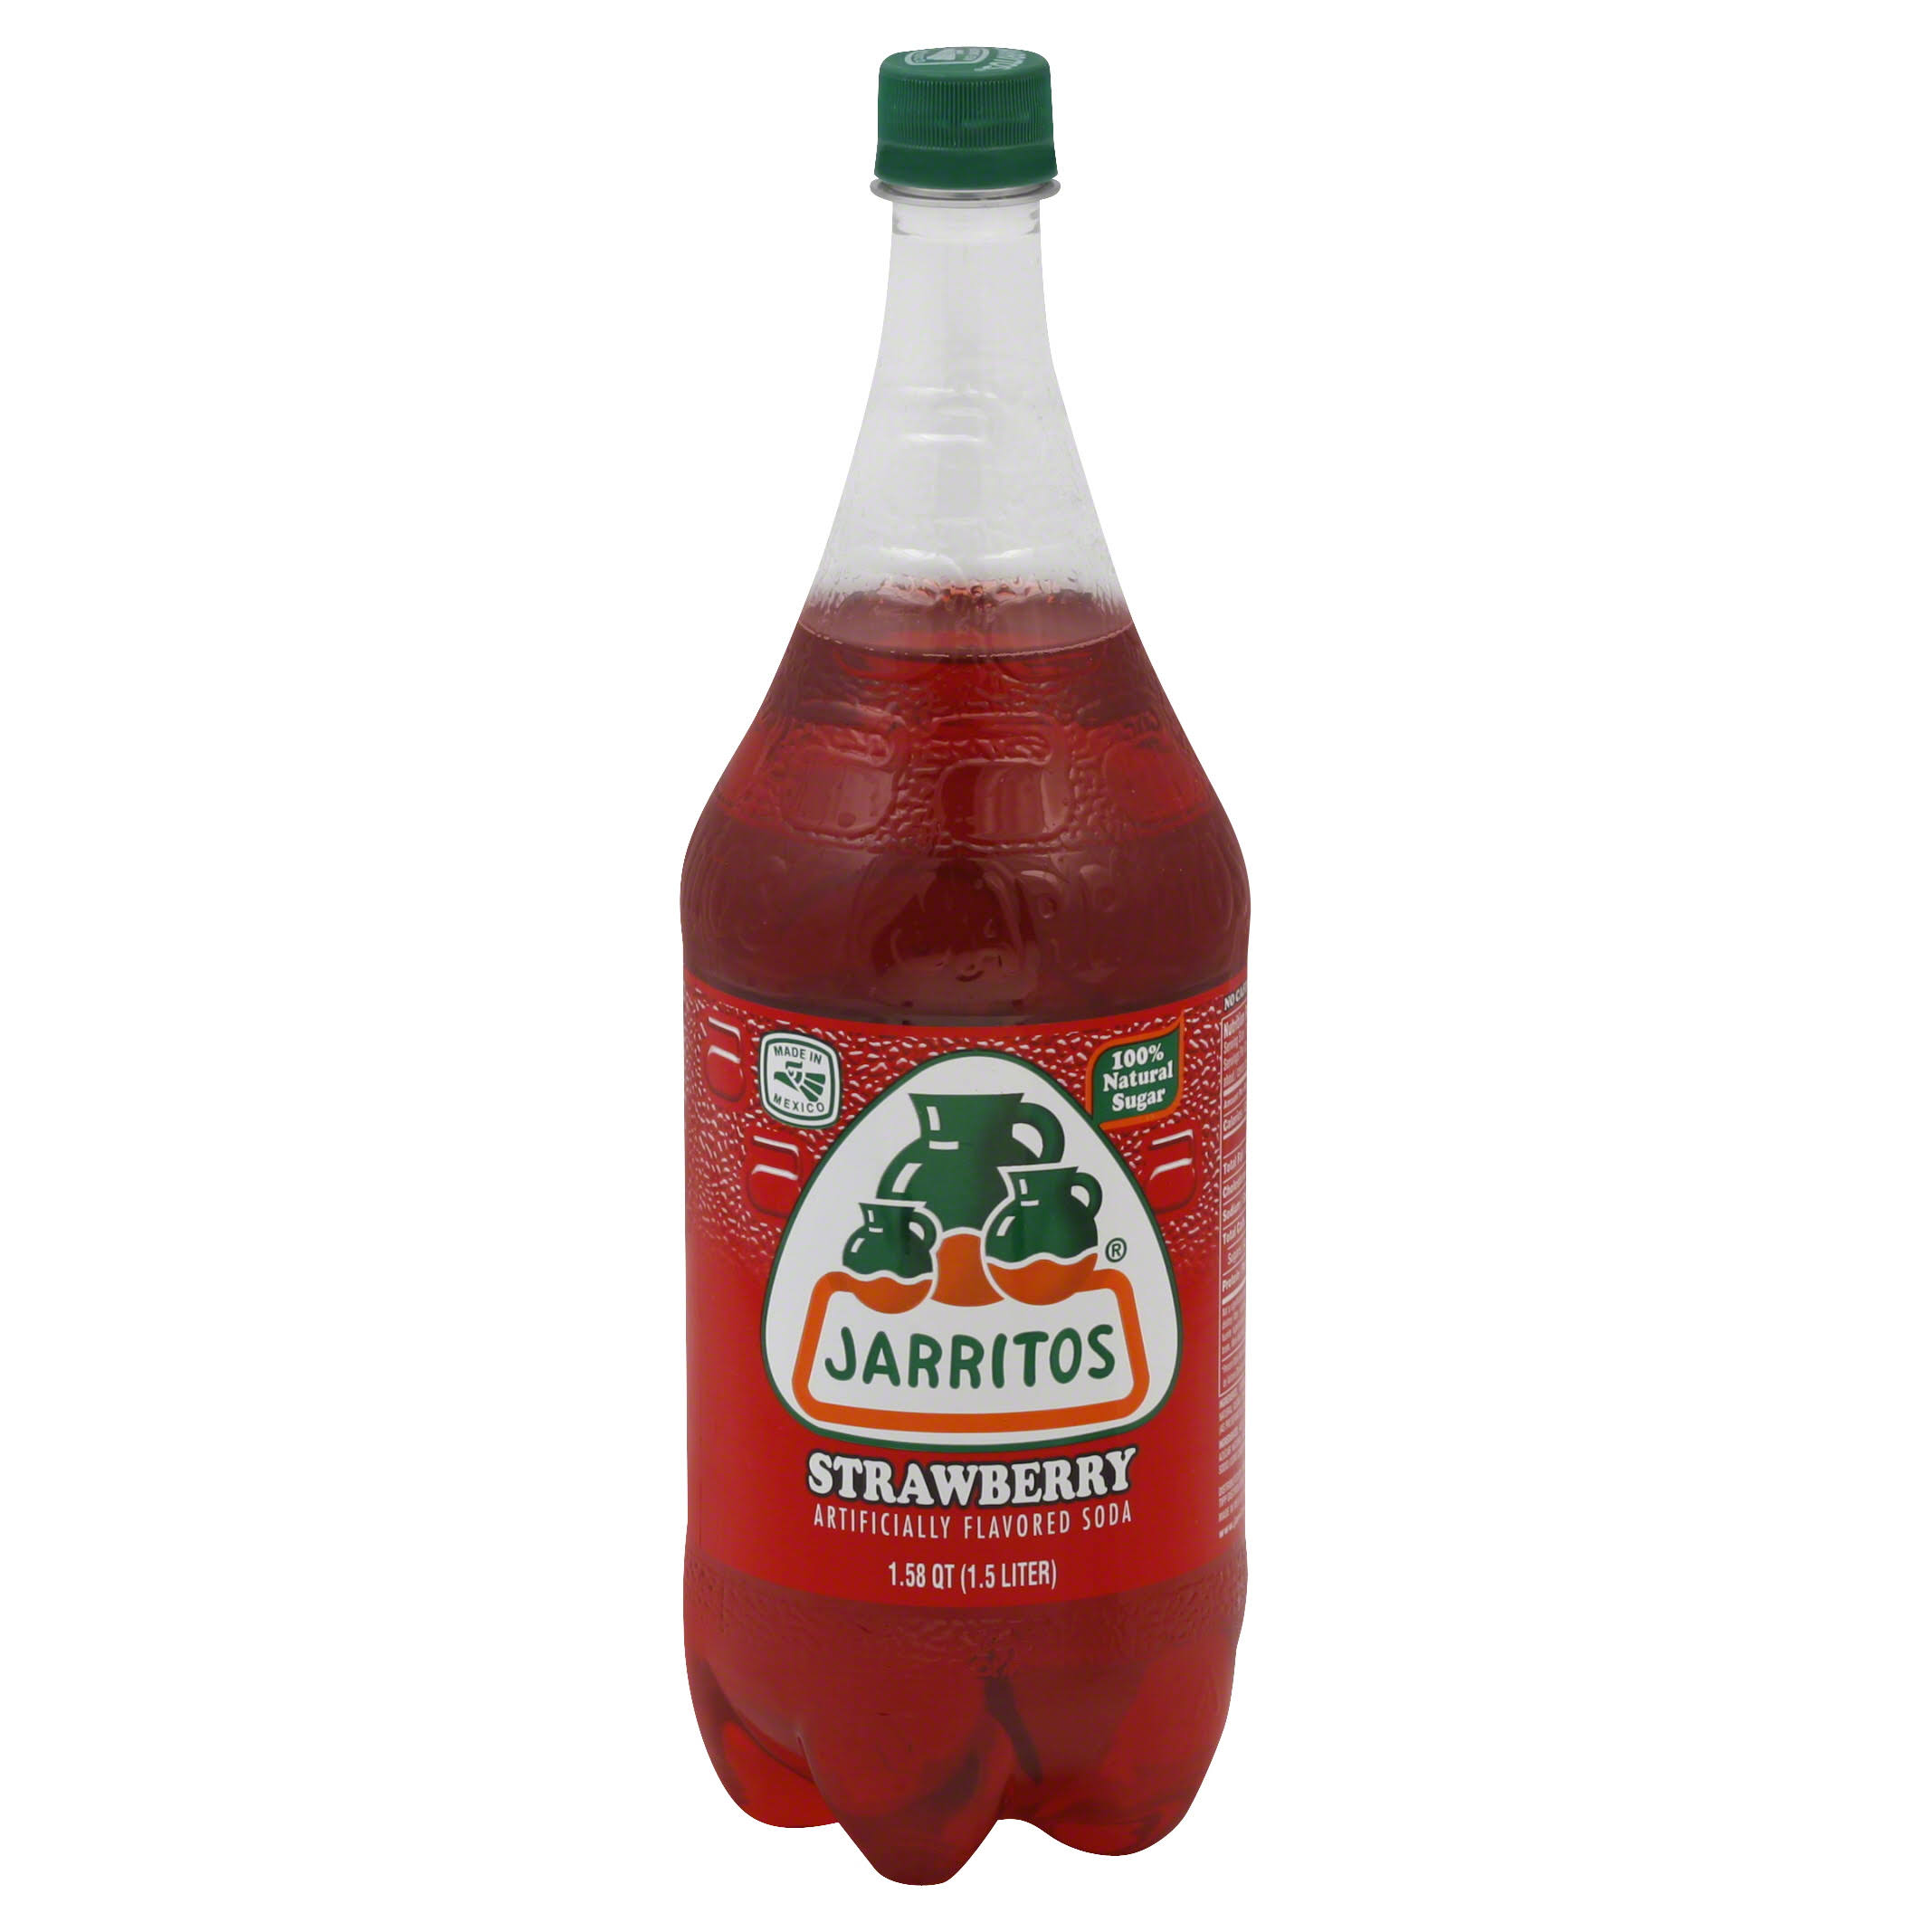 Jarritos Soda - Strawberry, 1.5L